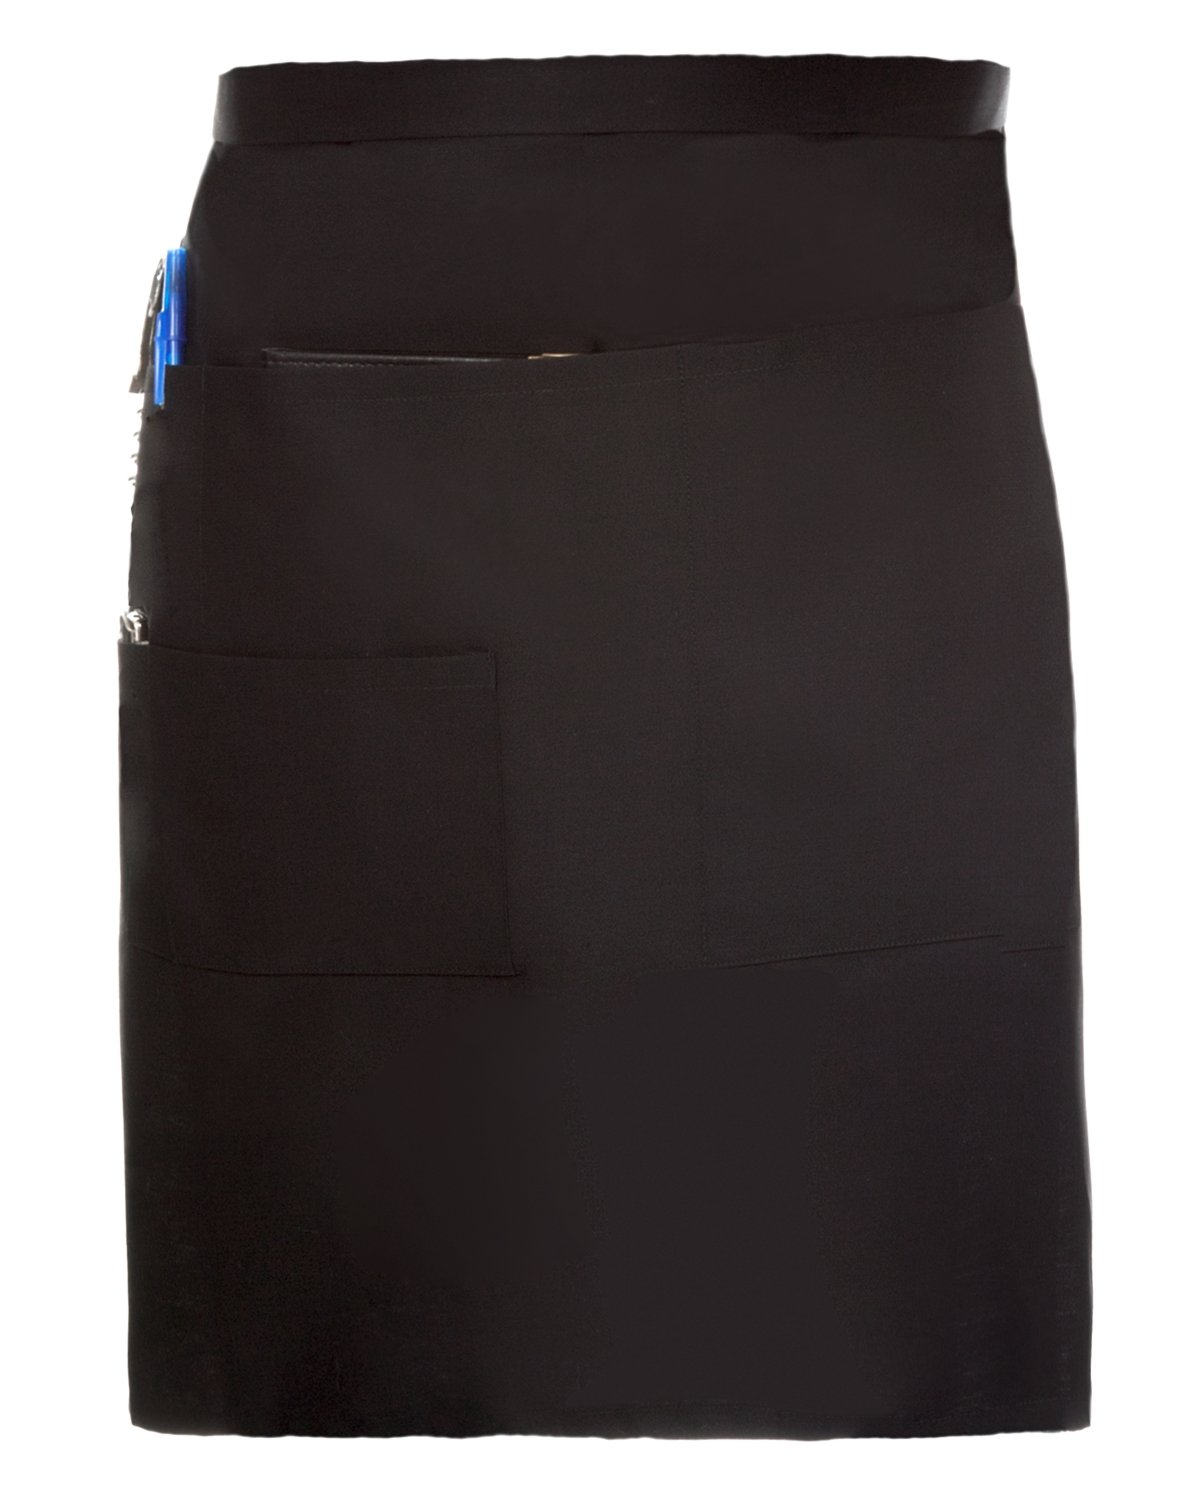 Premium Quality Restaurant Bistro Waiter Waitress Black Waist Apron Medium Length with Multiple Pockets ServiceApron Apmfbl